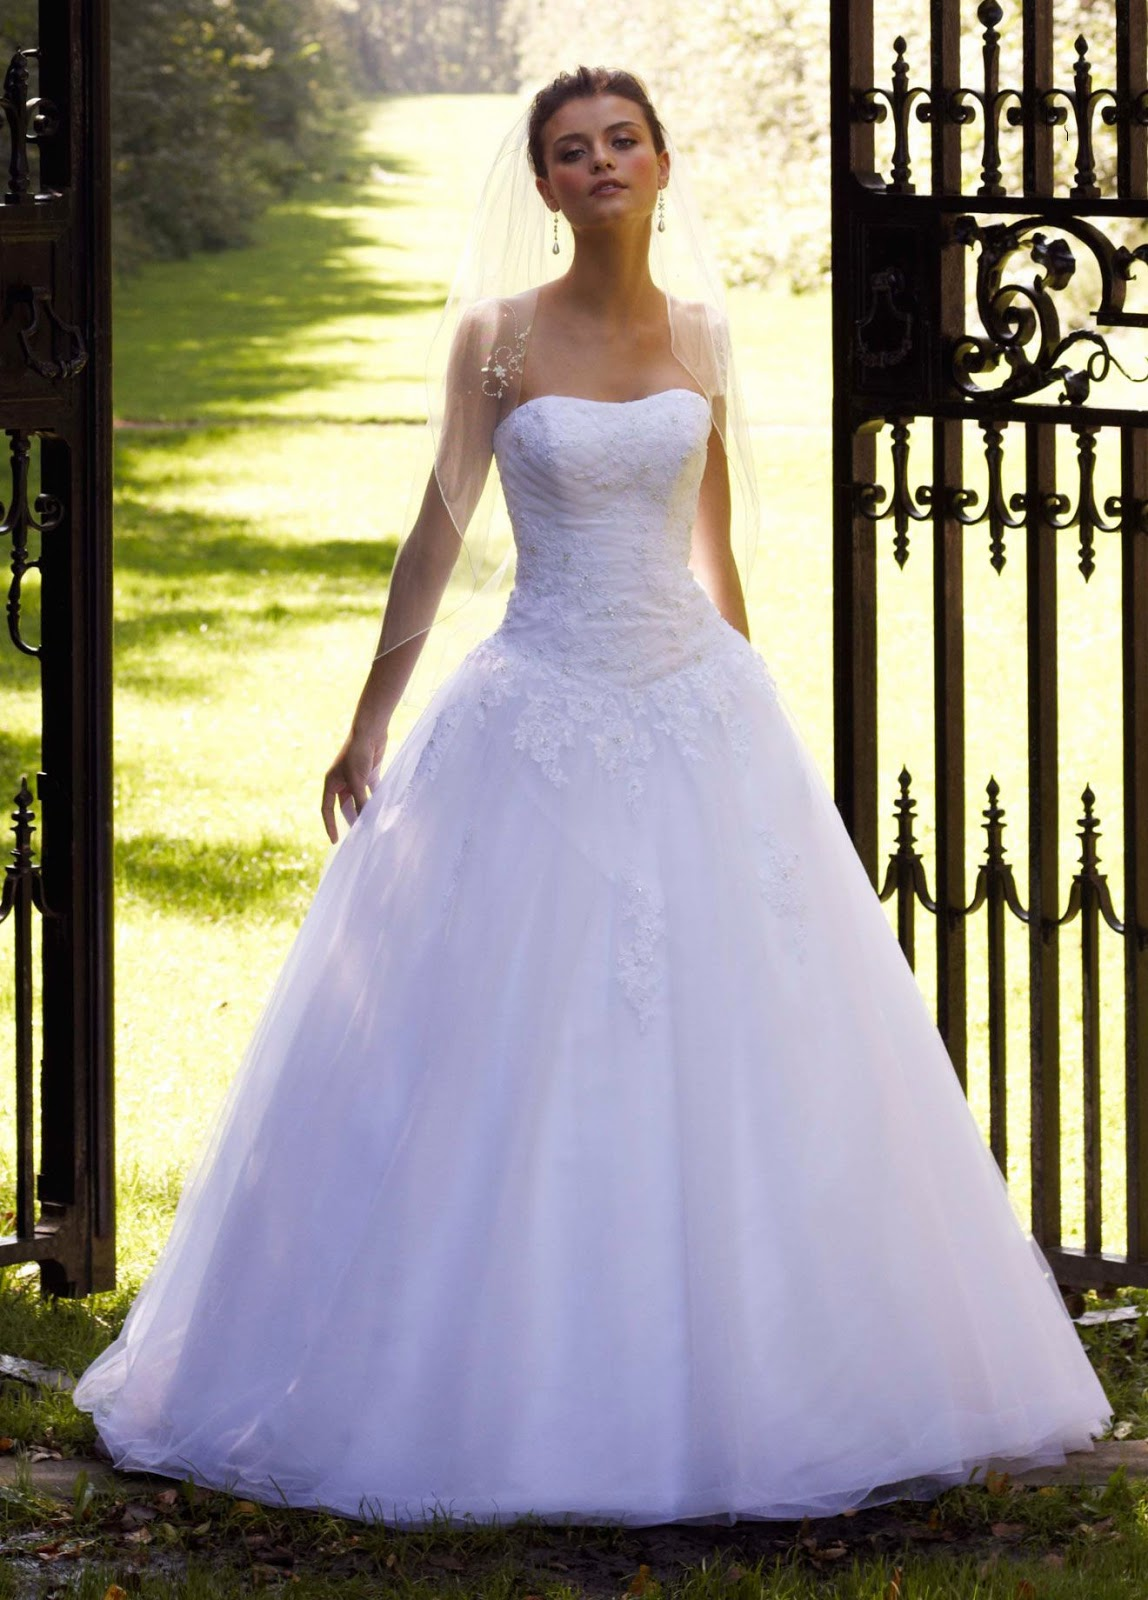 2016 Wedding Dresses and Trends: Davids Bridal collection